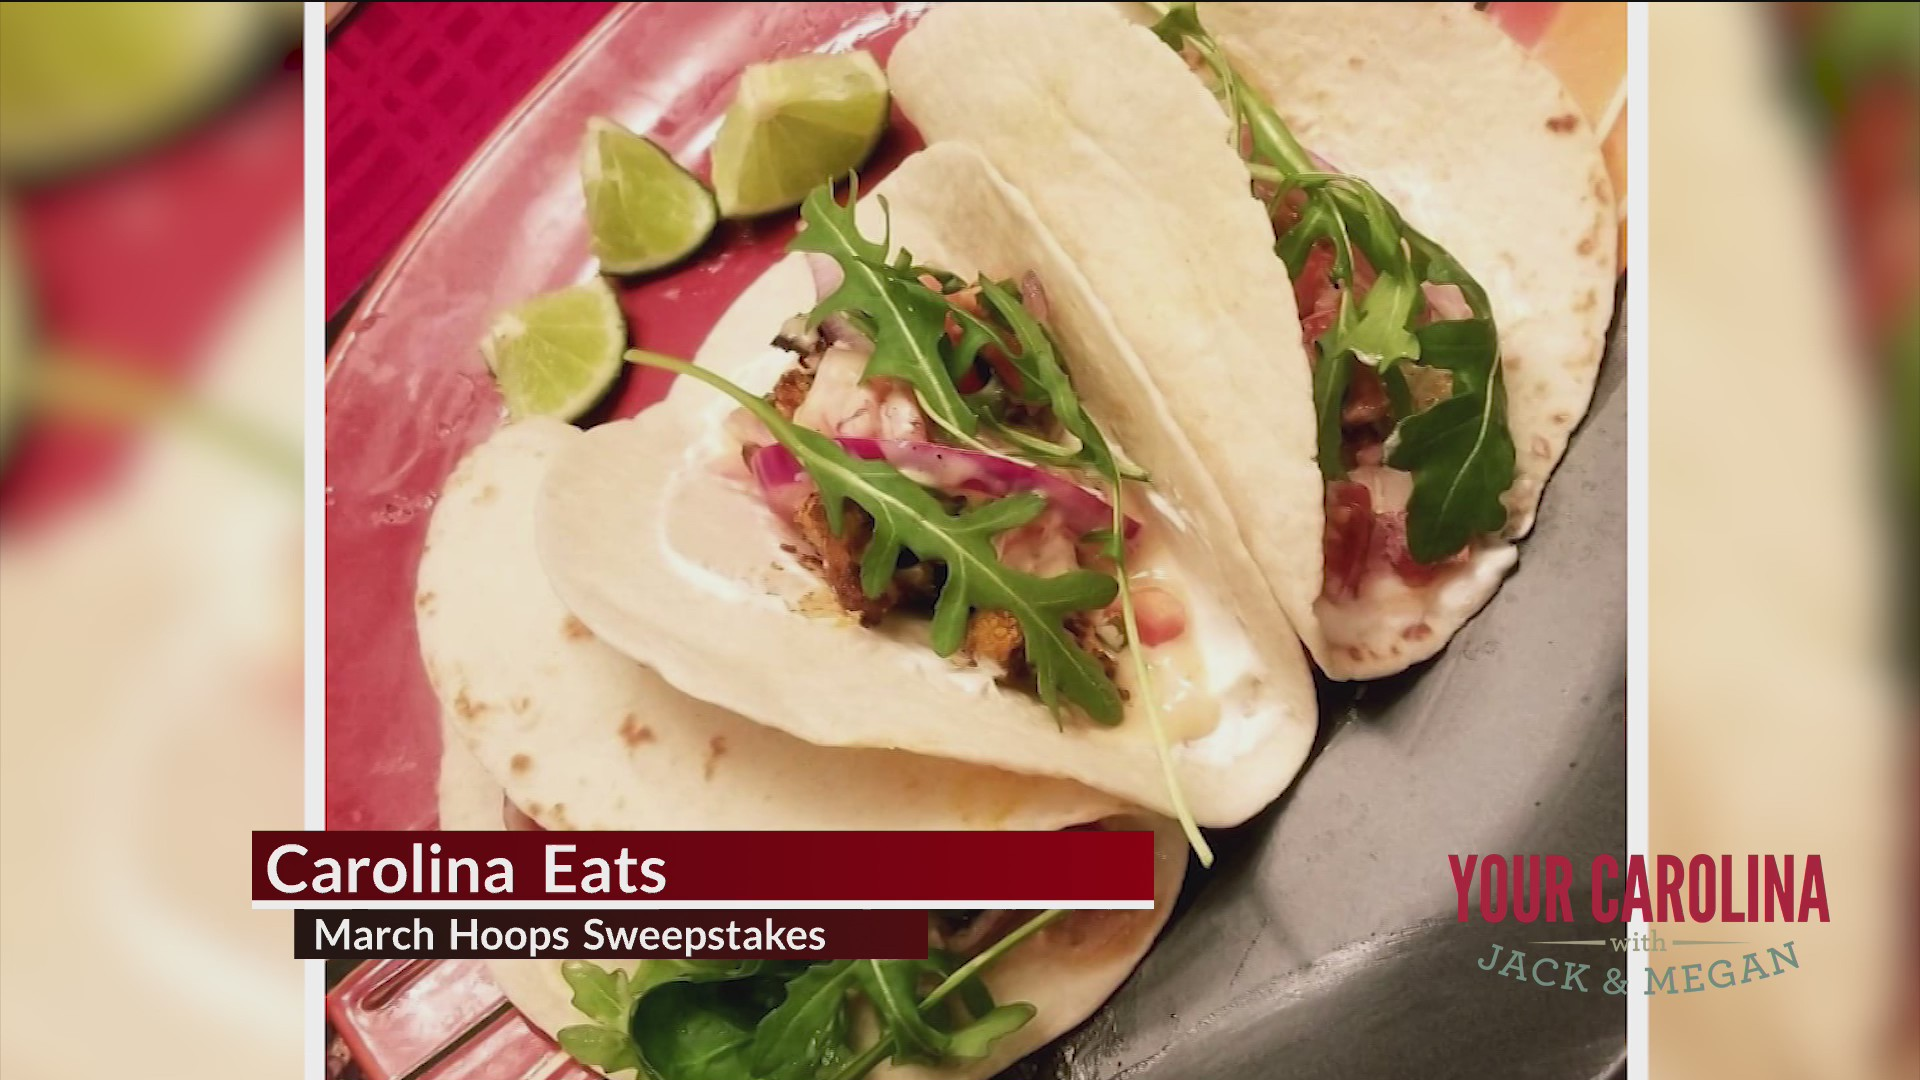 Spicy Roasted Cauli Tacos makes final five in Carolina Eats March Hoops Recipe Sweepstakes presented by Ingles